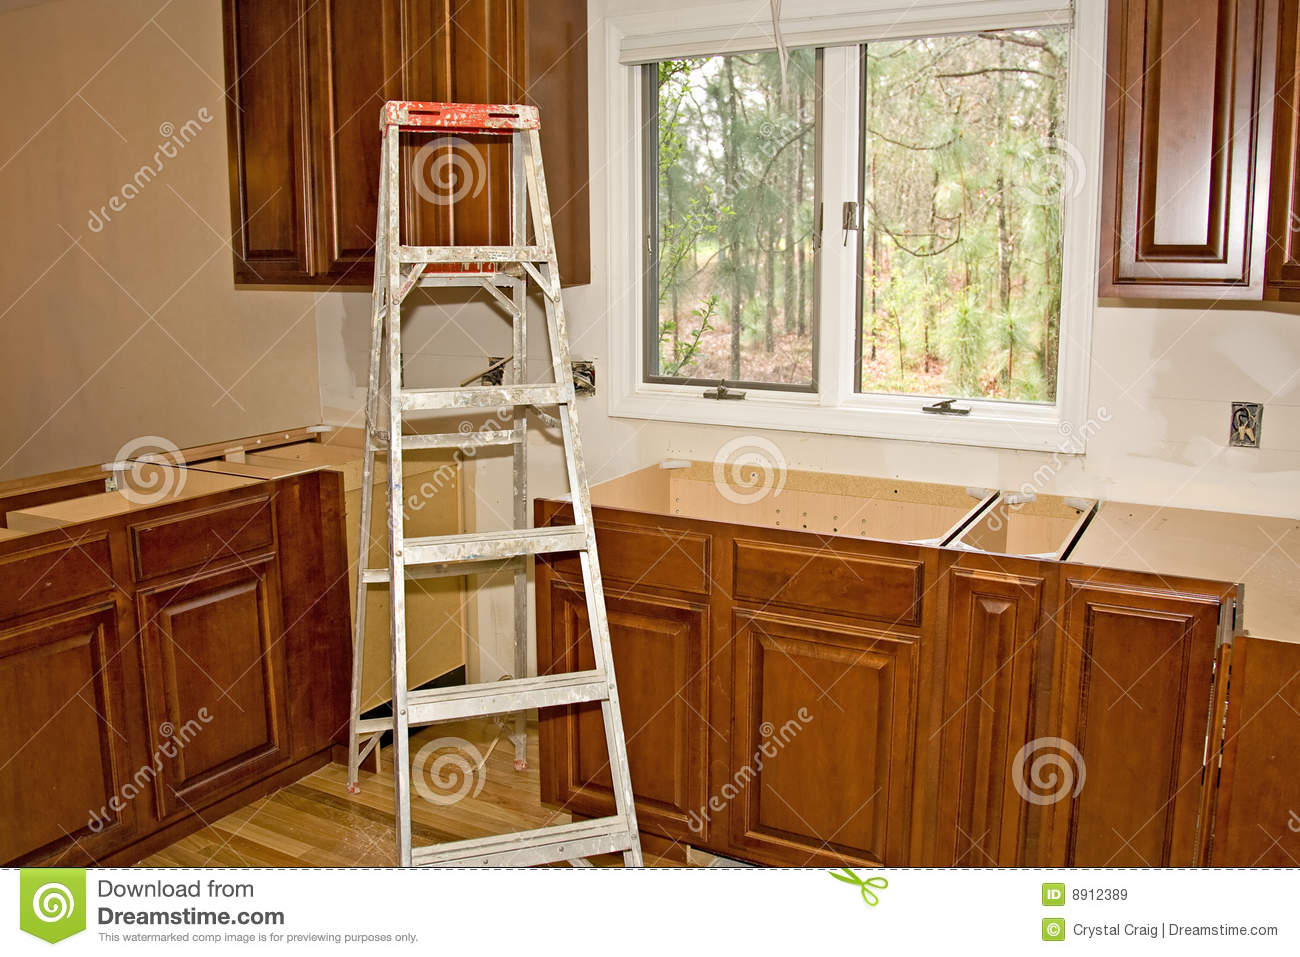 Kitchen remodel cabinets home improvement stock image for Home improvement kitchen cabinets